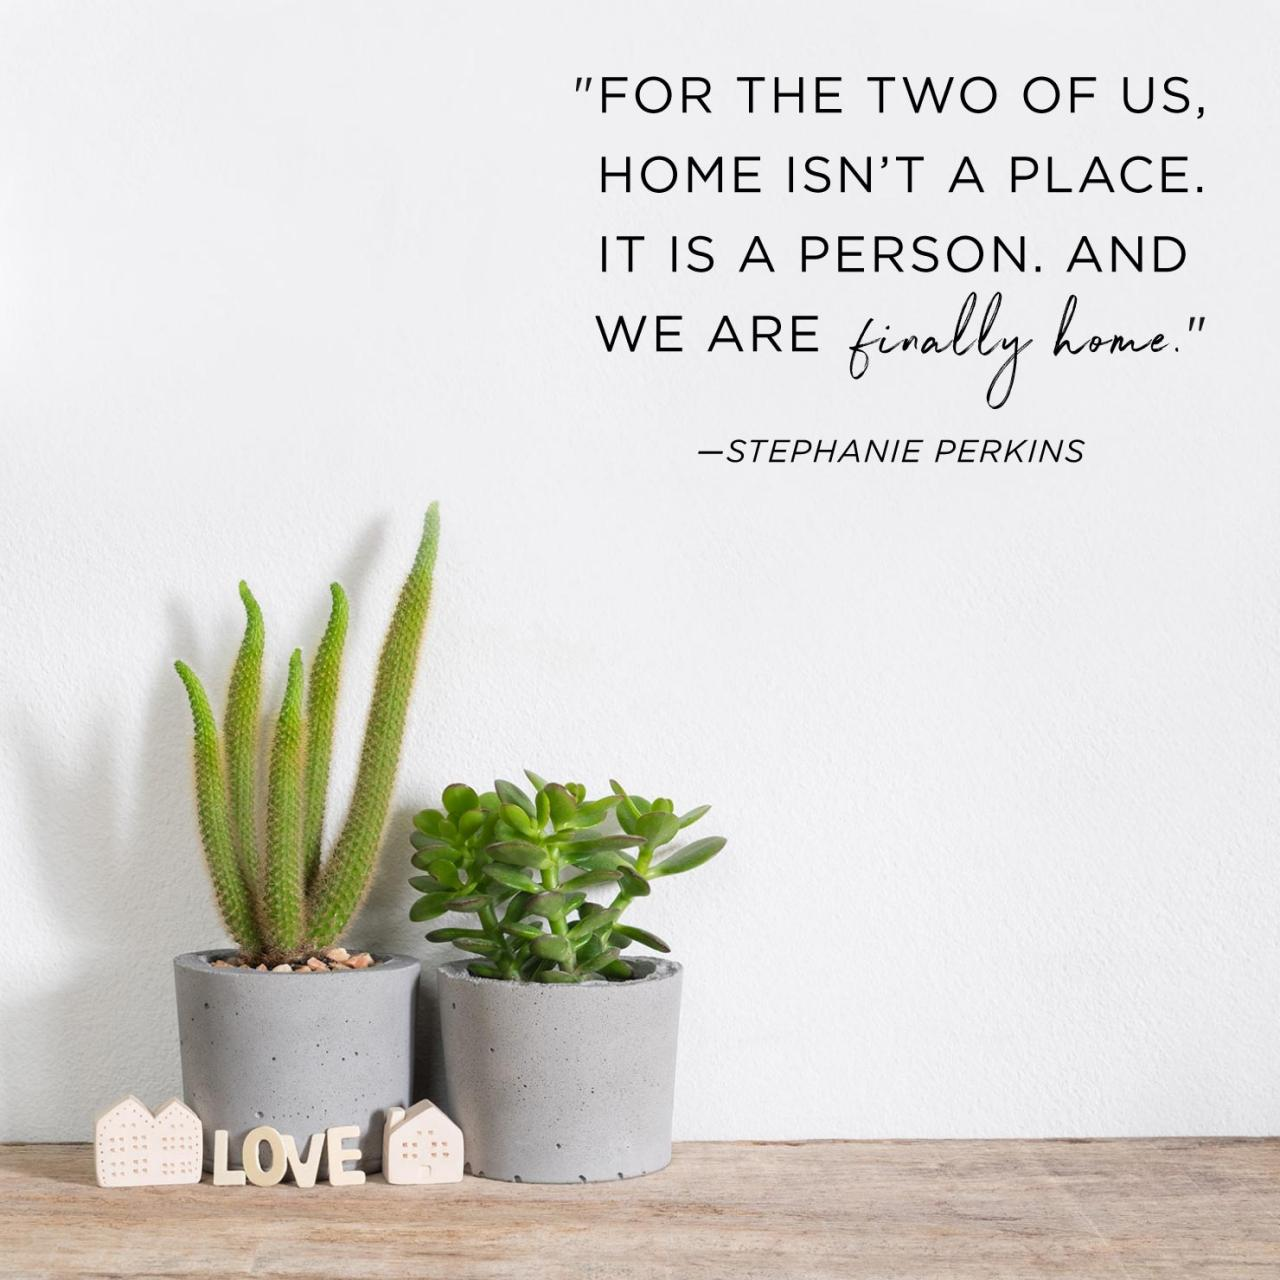 Quote Above Background Image For The Two Of Us Home Isnt